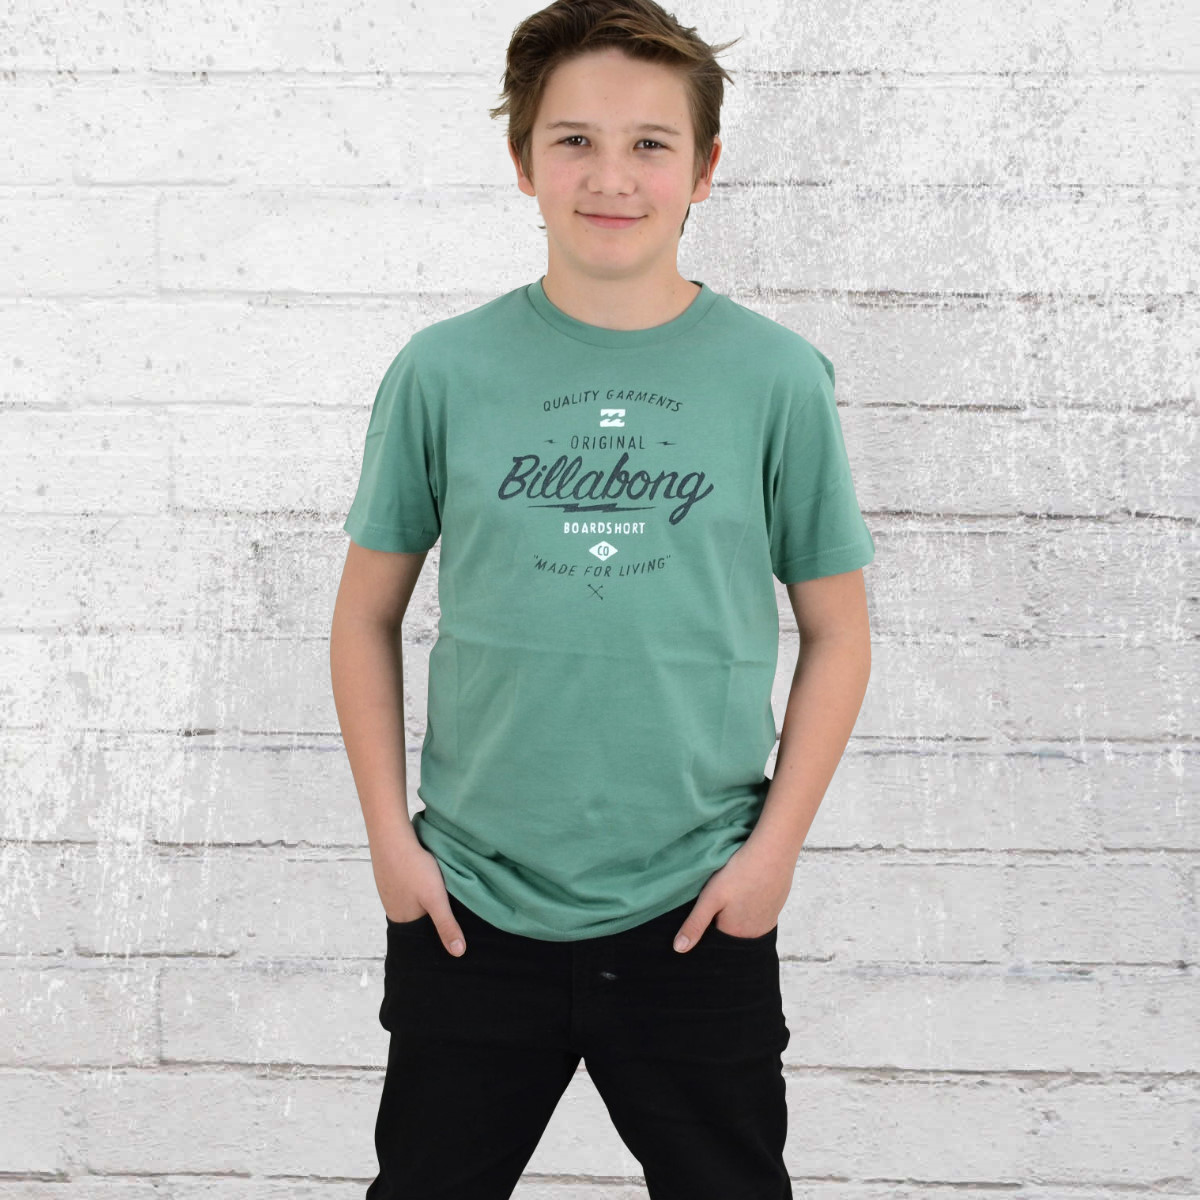 Shop Boys Green Baby T-Shirts from CafePress. Find great designs on Short and Long Sleeve Baby T-Shirts.?Free Returns?% Satisfaction Guarantee?Fast Shipping.